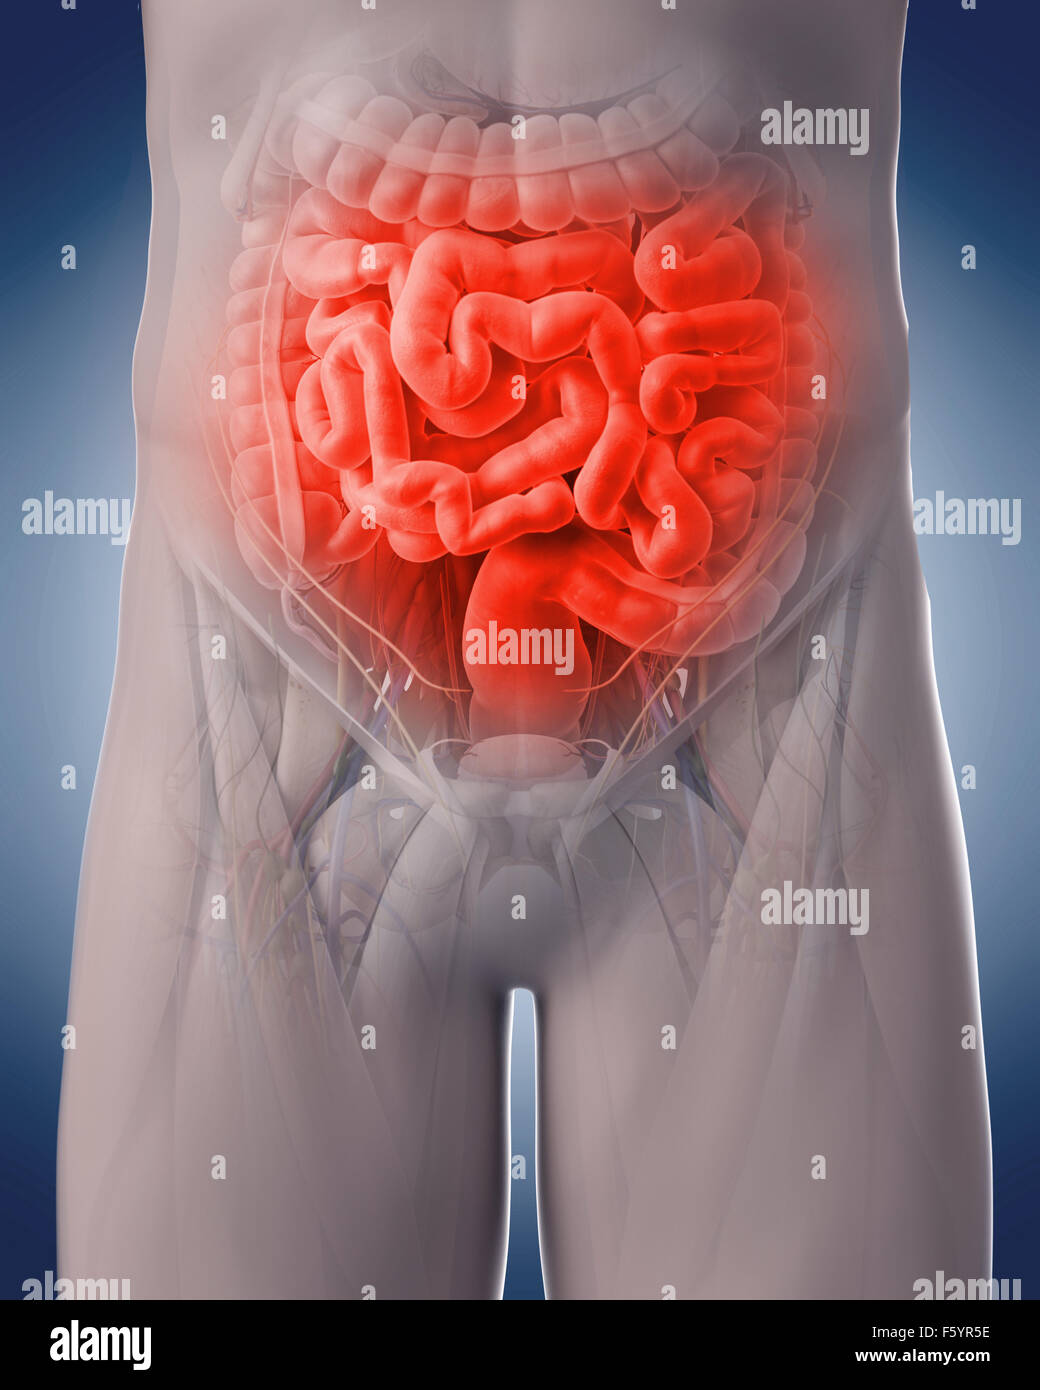 medical 3d illustration of a painful intestine - Stock Image